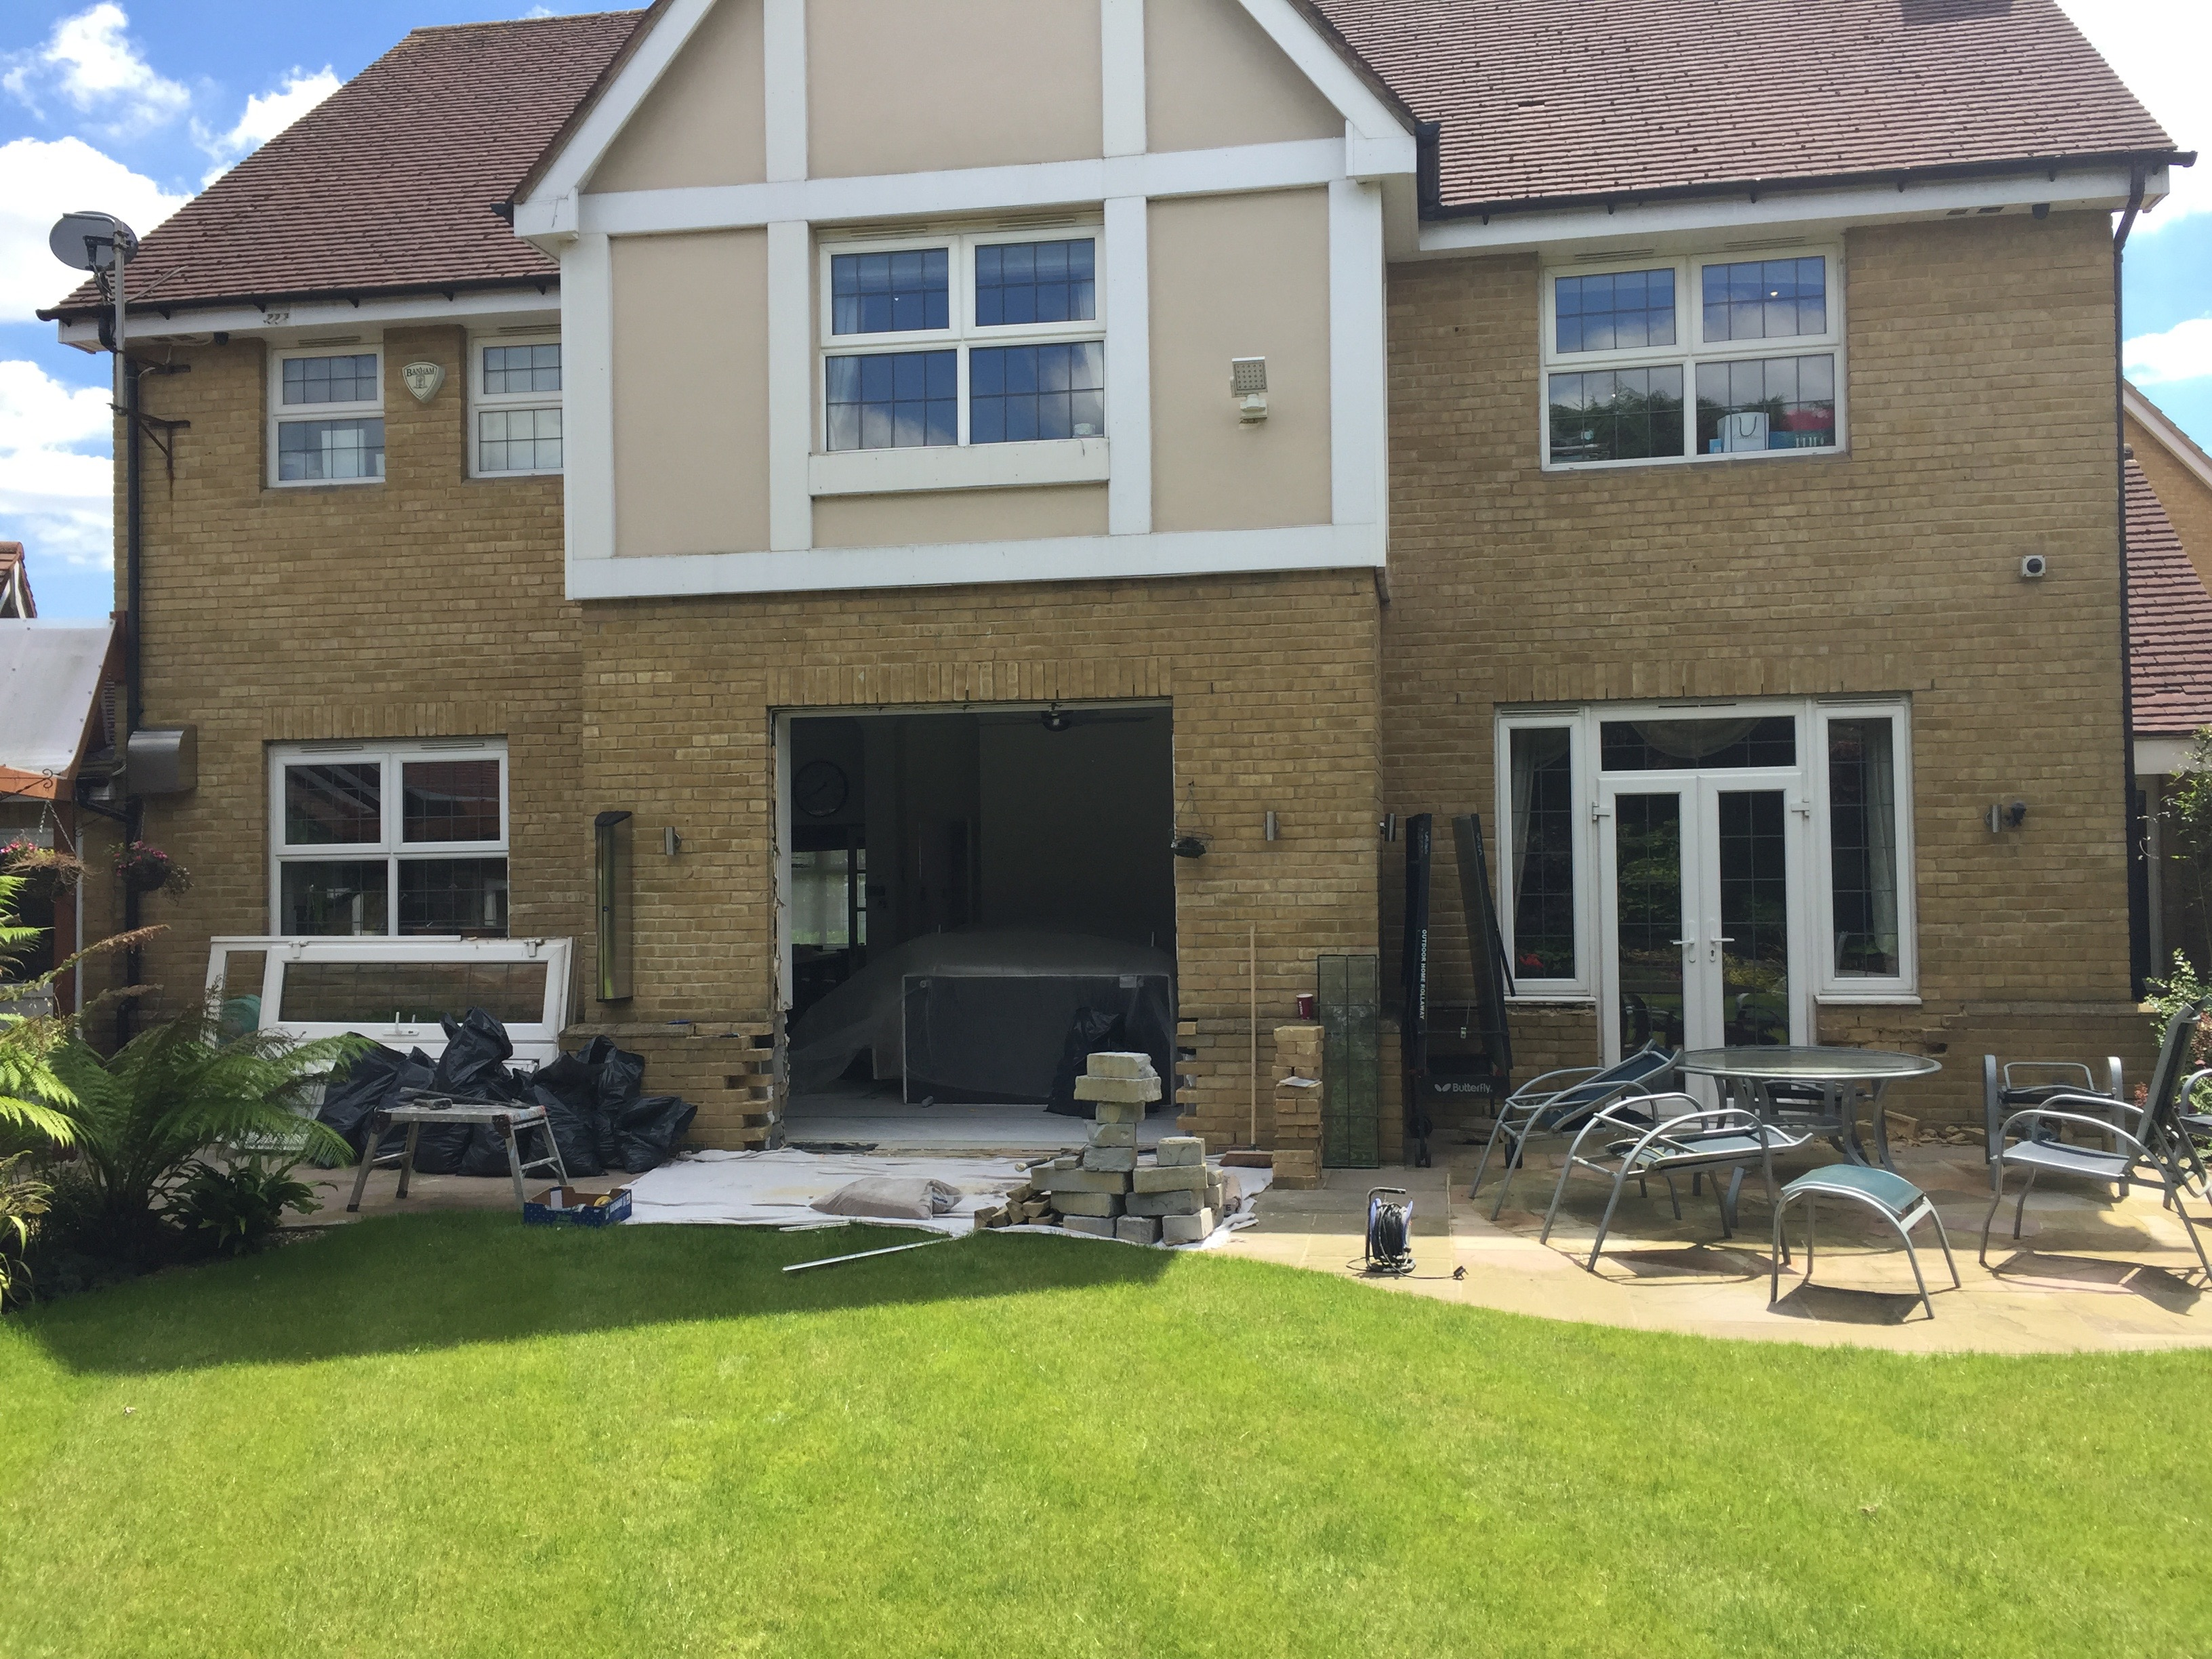 COMPLETE HOUSE REFURBISHMENT PROJECT